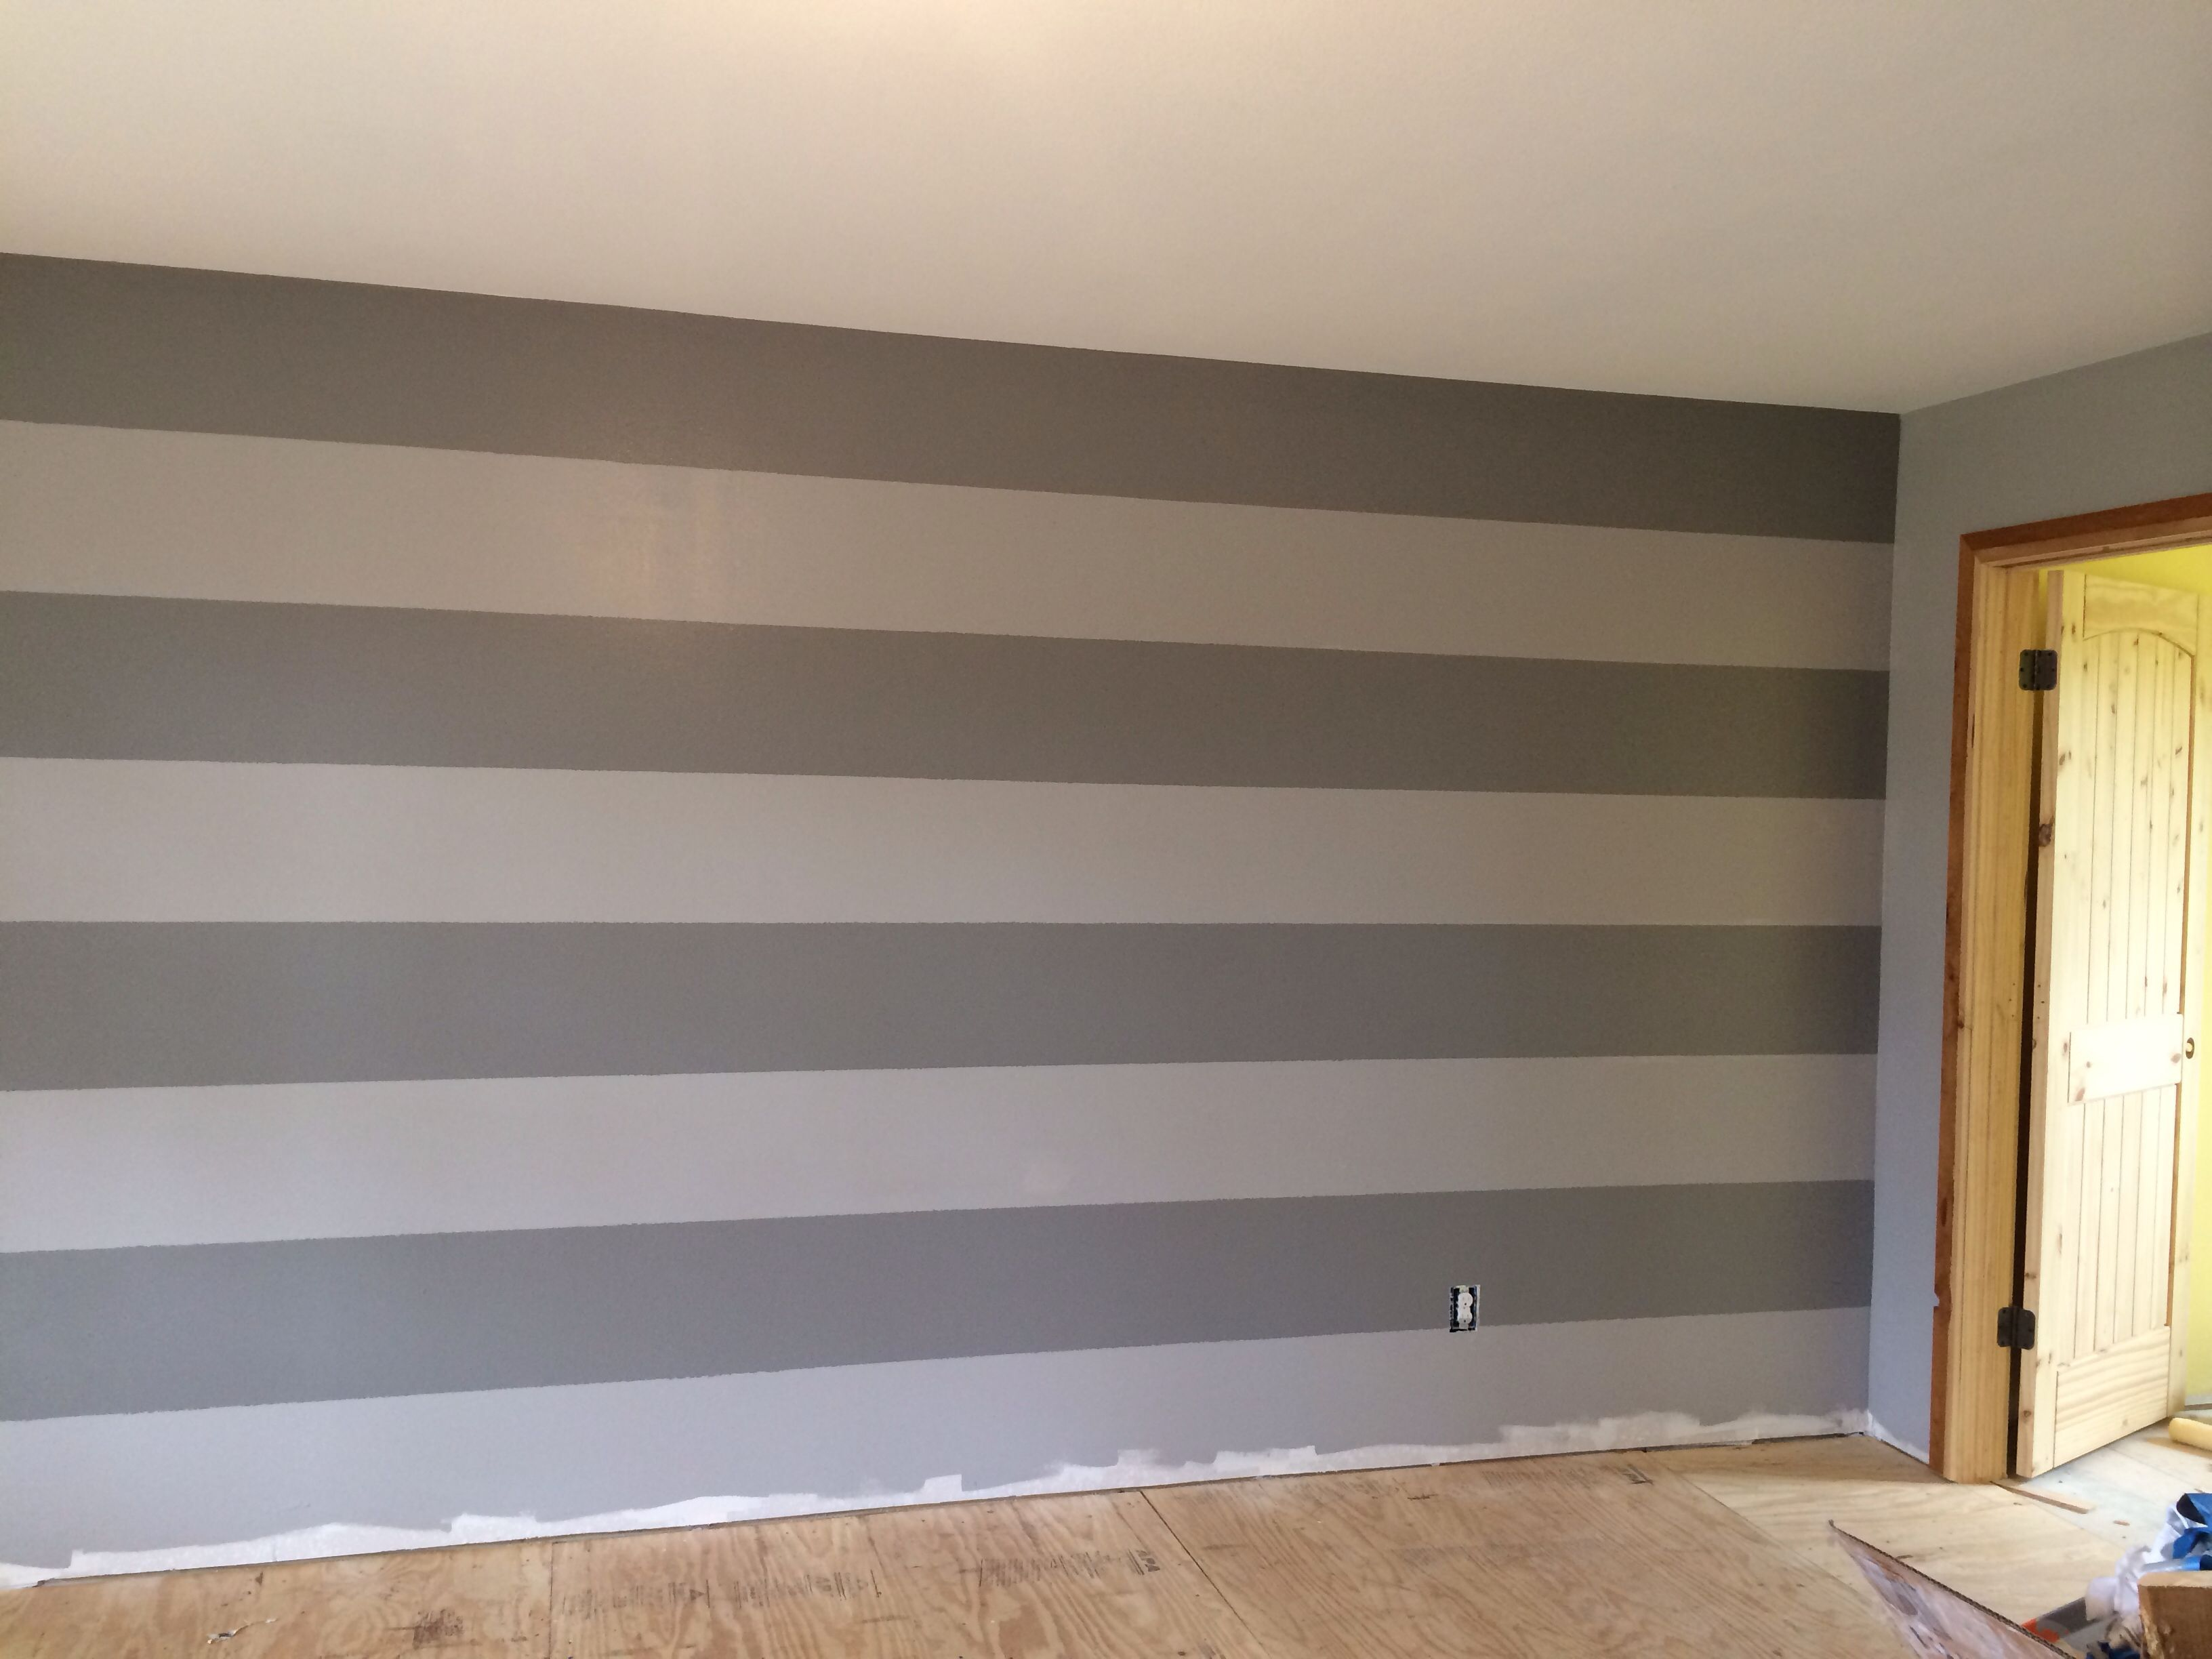 Gray stripes wall. Behr paint colors Porpoise & Anonymous #graystripedwalls Gray stripes wall. Behr paint colors Porpoise & Anonymous #graystripedwalls